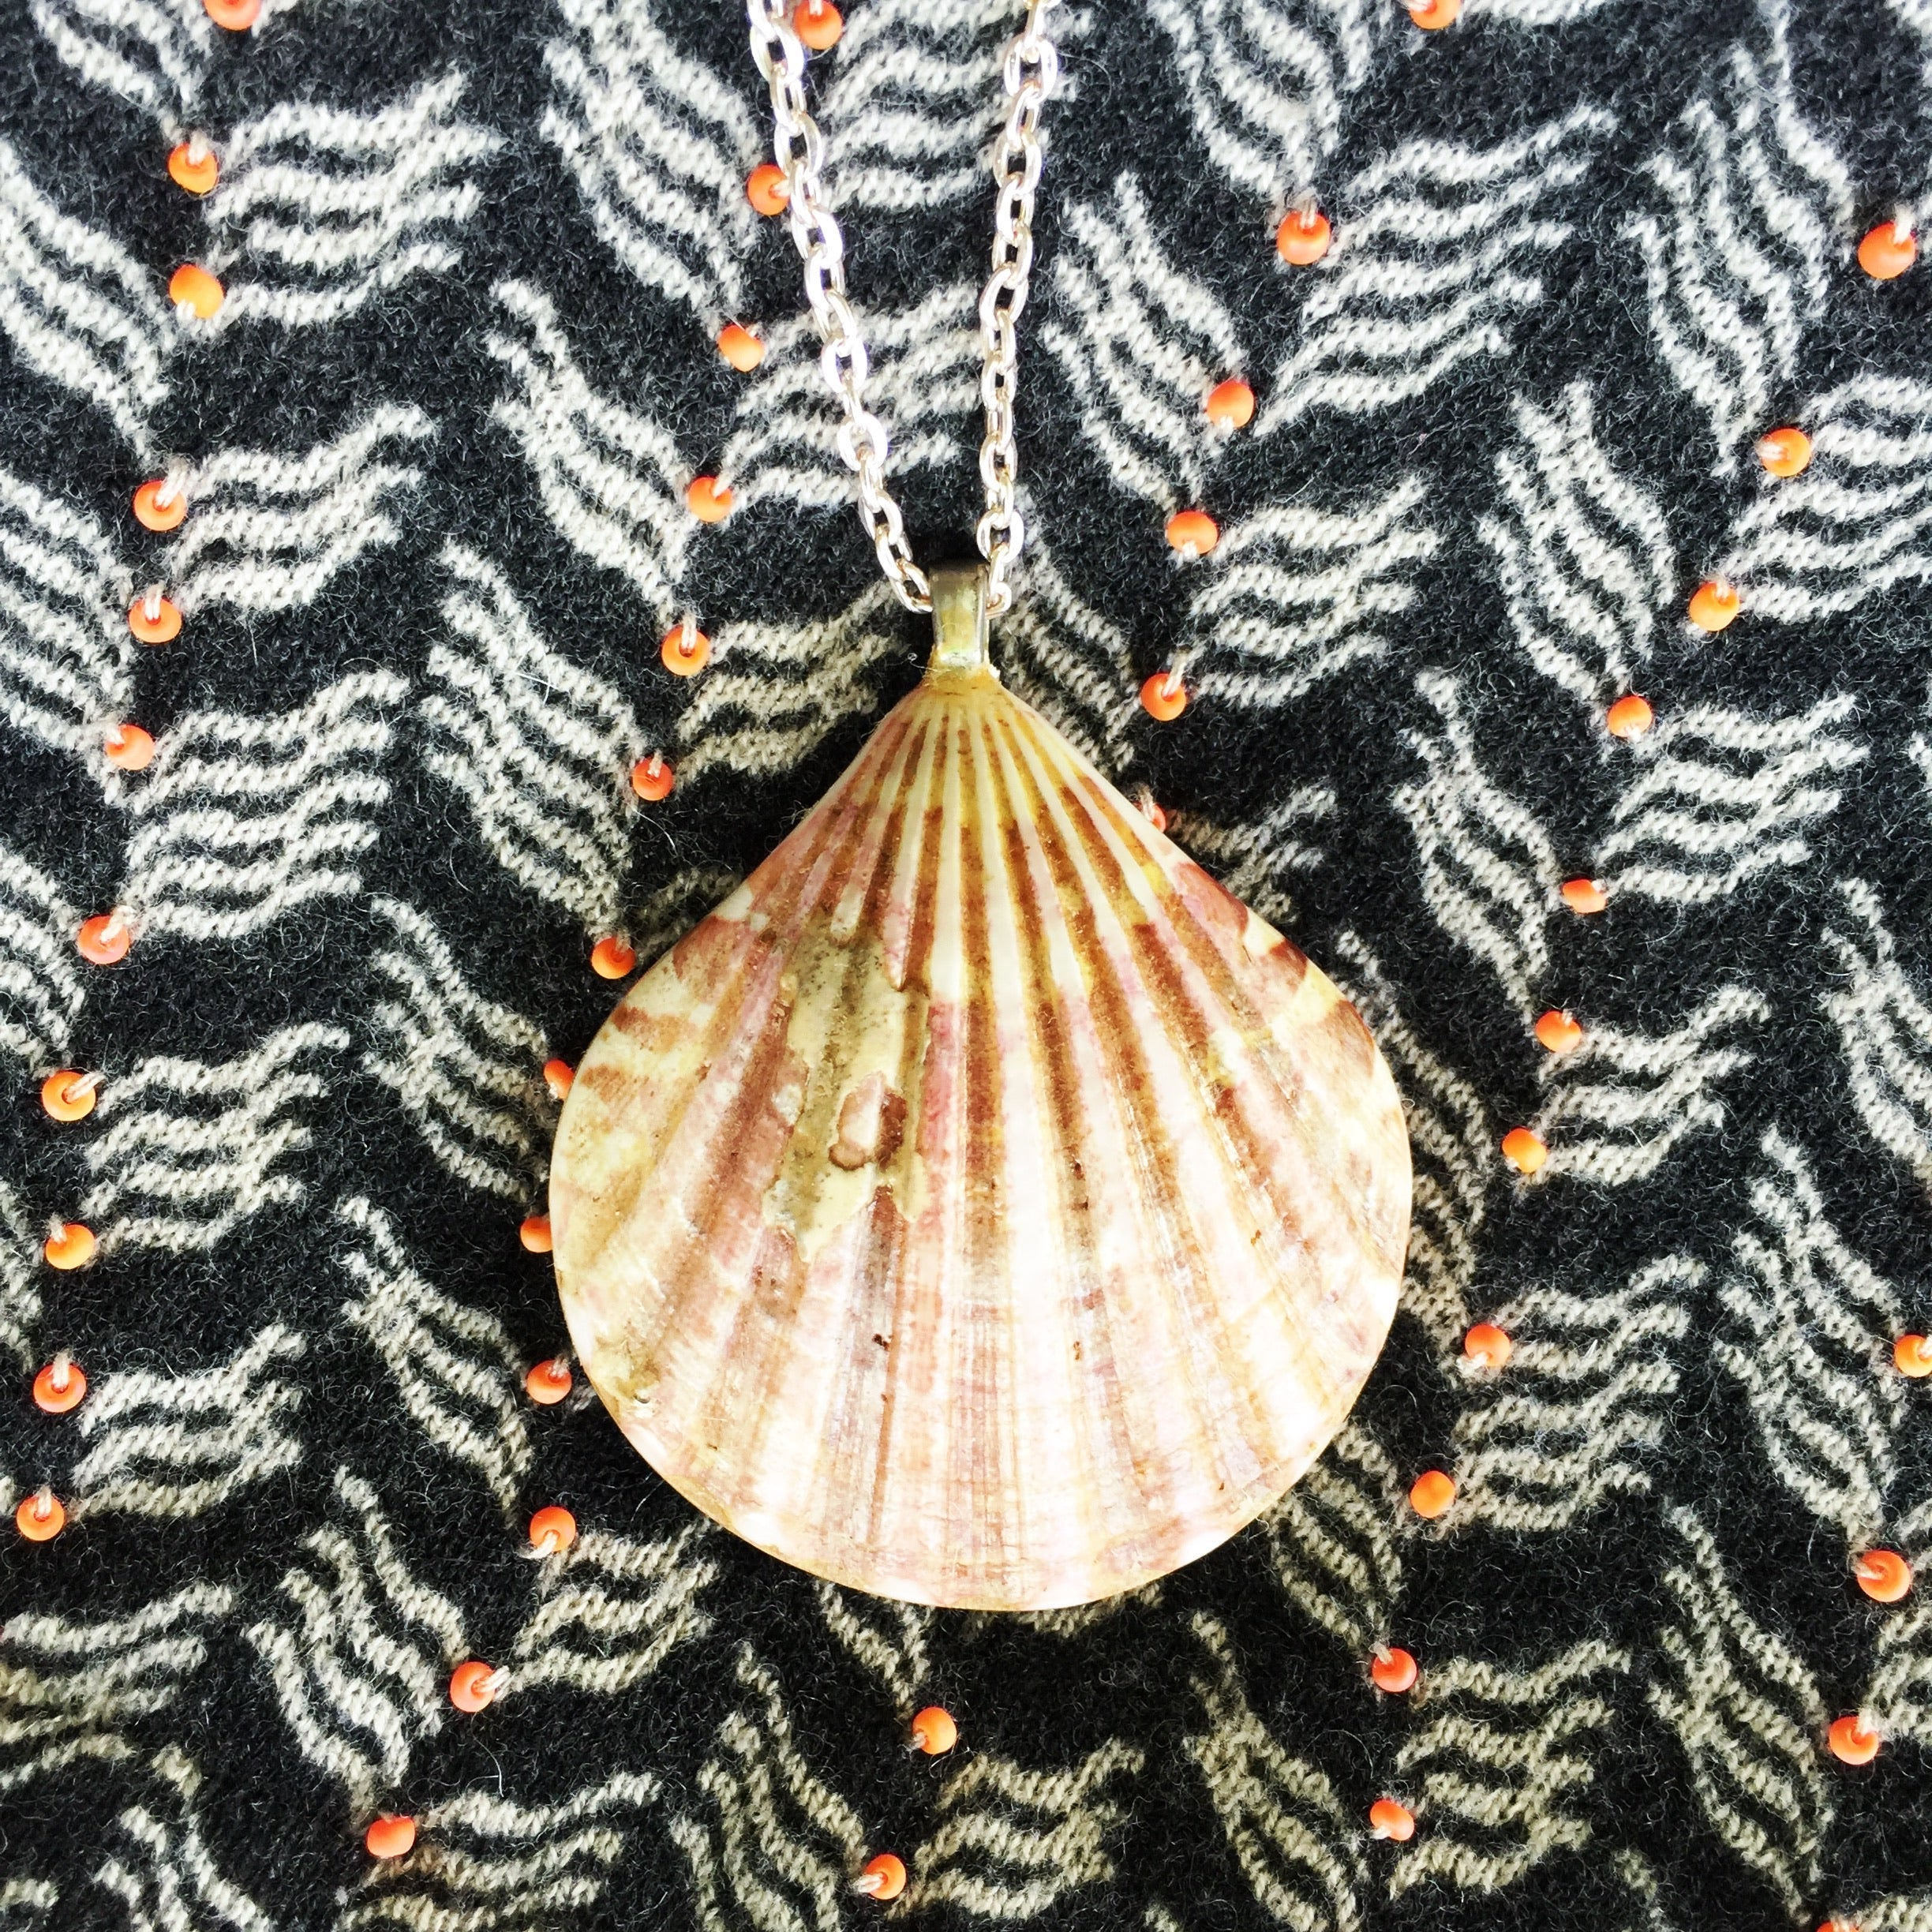 Sunrise Shell Necklaces| Hawaiian Sunrise/Moonrise Shell pendants| Beach Jewelry|12 - Honorooroo Lifestyle